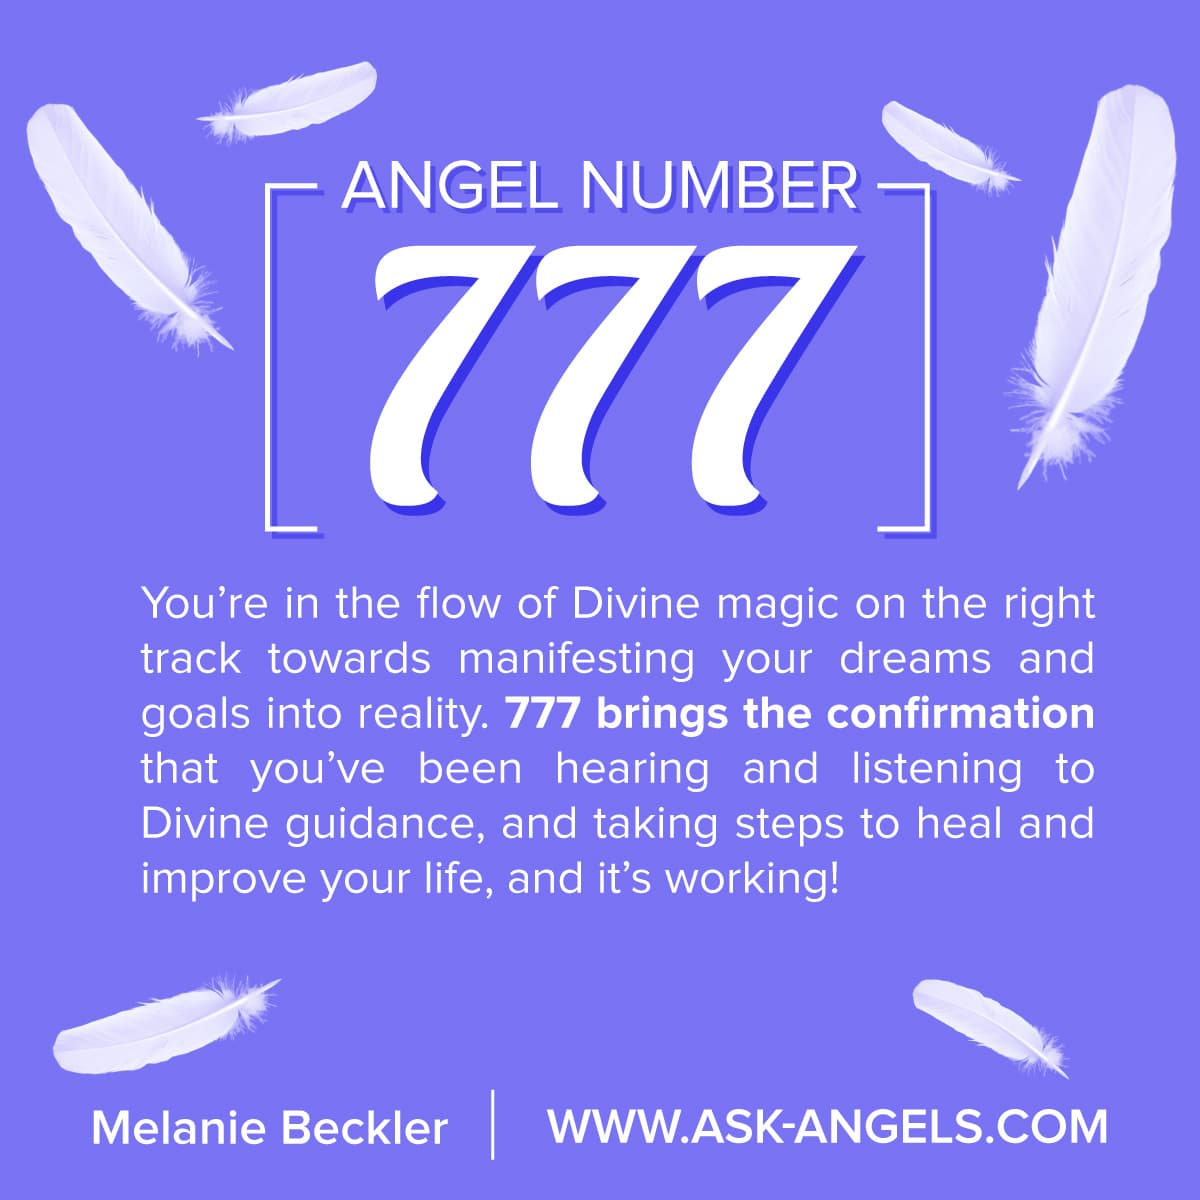 Angel Day - how to find out the exact date